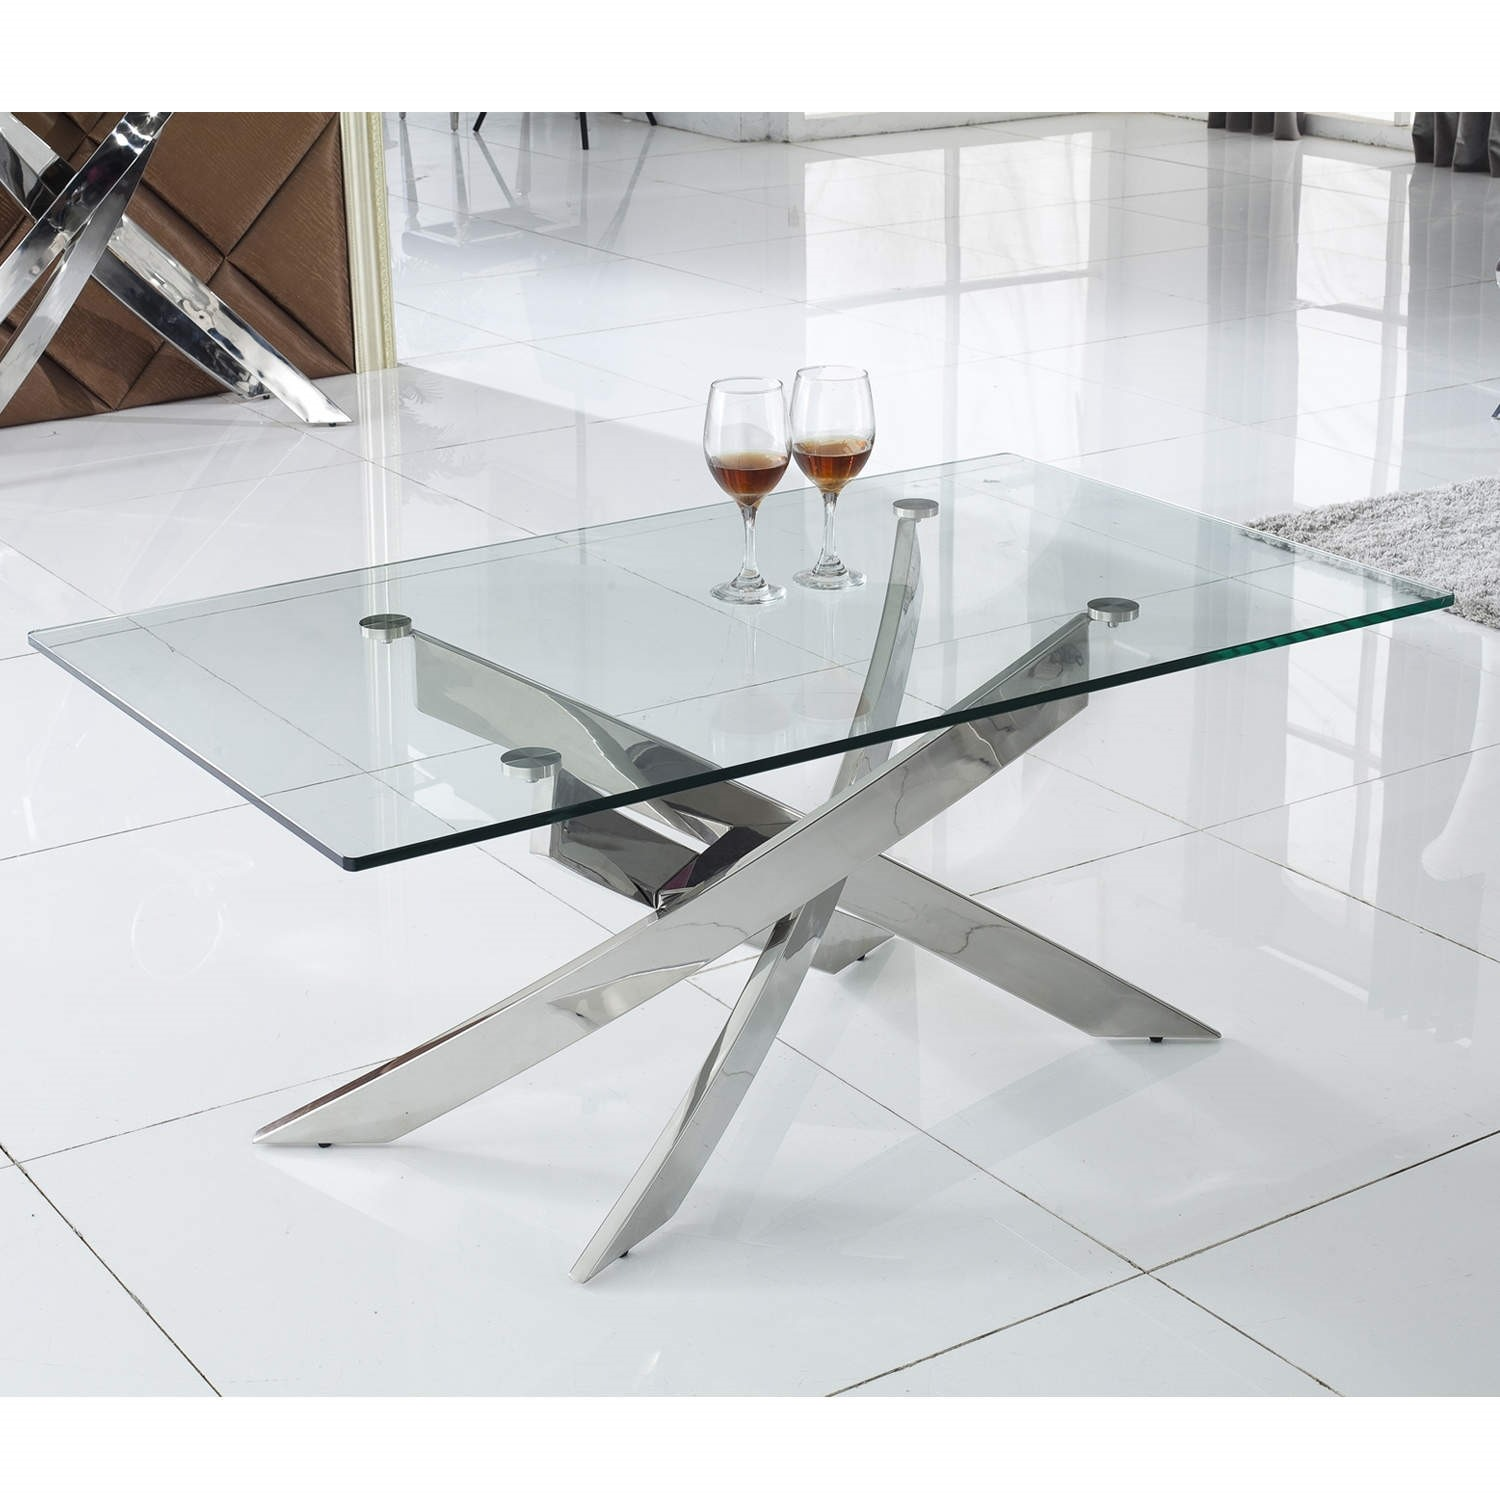 Glass Coffee Table New On Images of Awesome